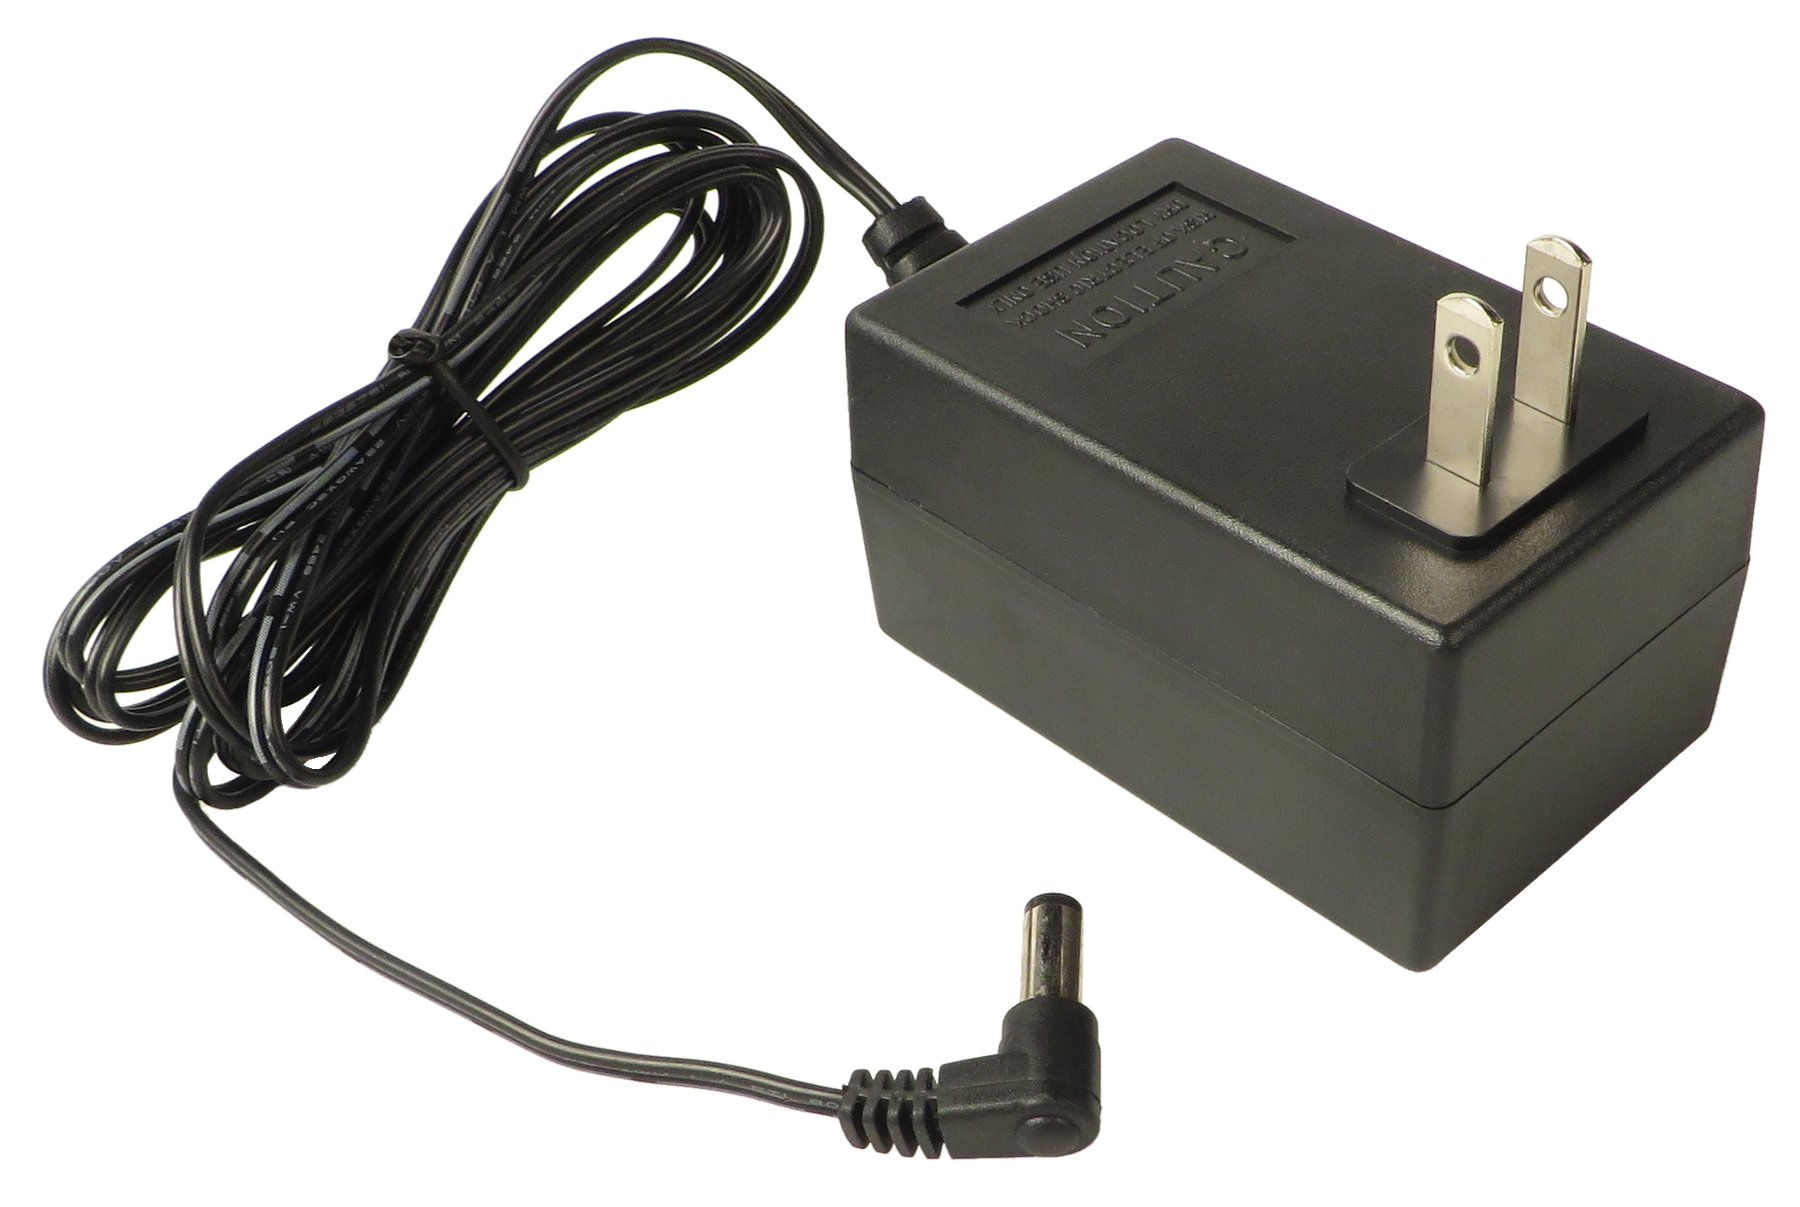 18V 600MA AC Adaptor for Mix5 and Mix8